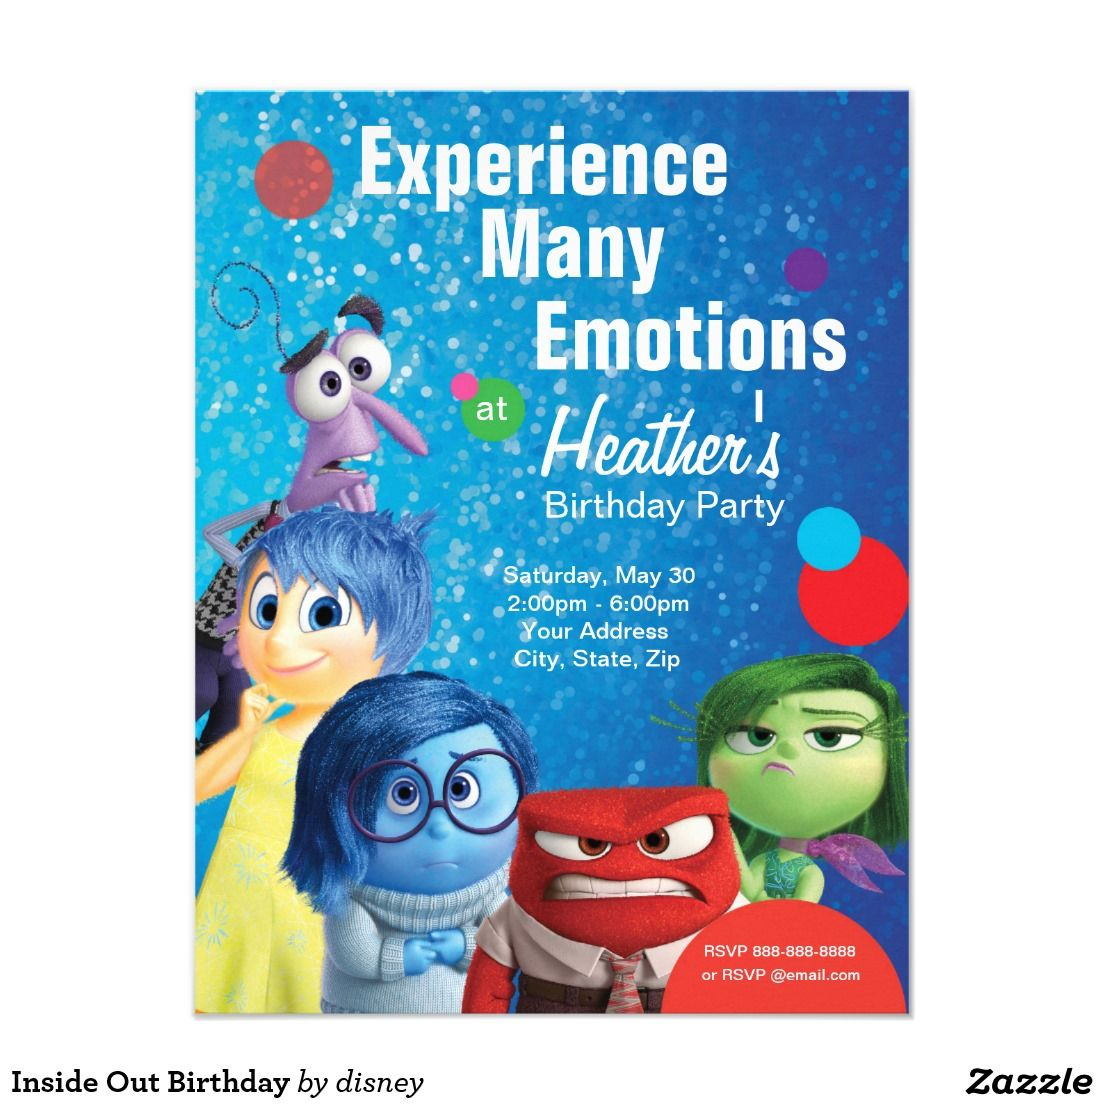 Inside Out Birthday Card Birthdays Birthday Party Ideas And - Birthday invitations inside out